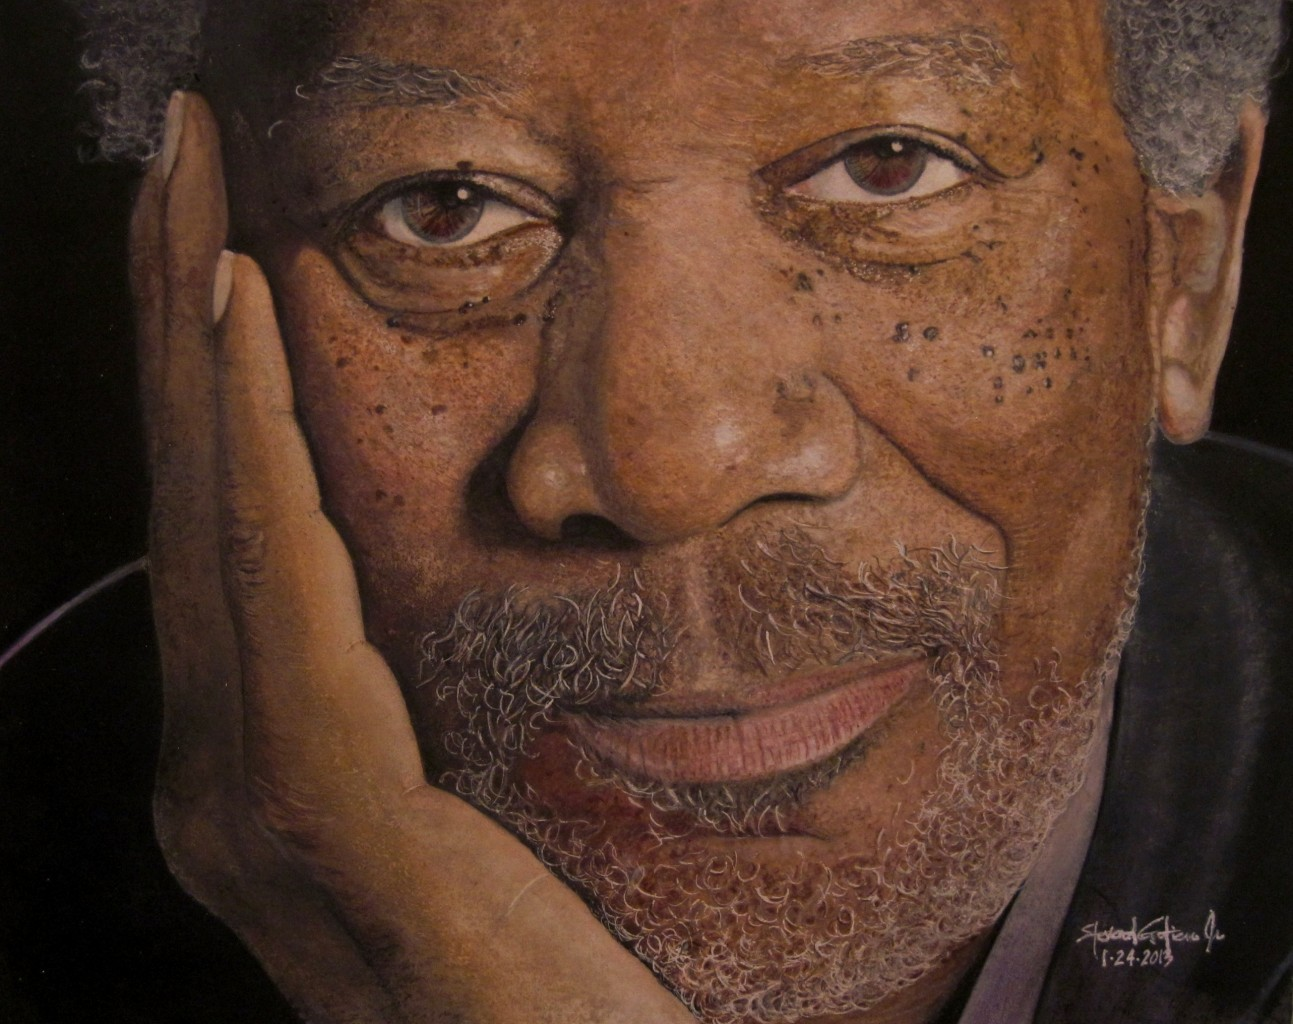 Color pencil illustrations by Steven Gutierrez